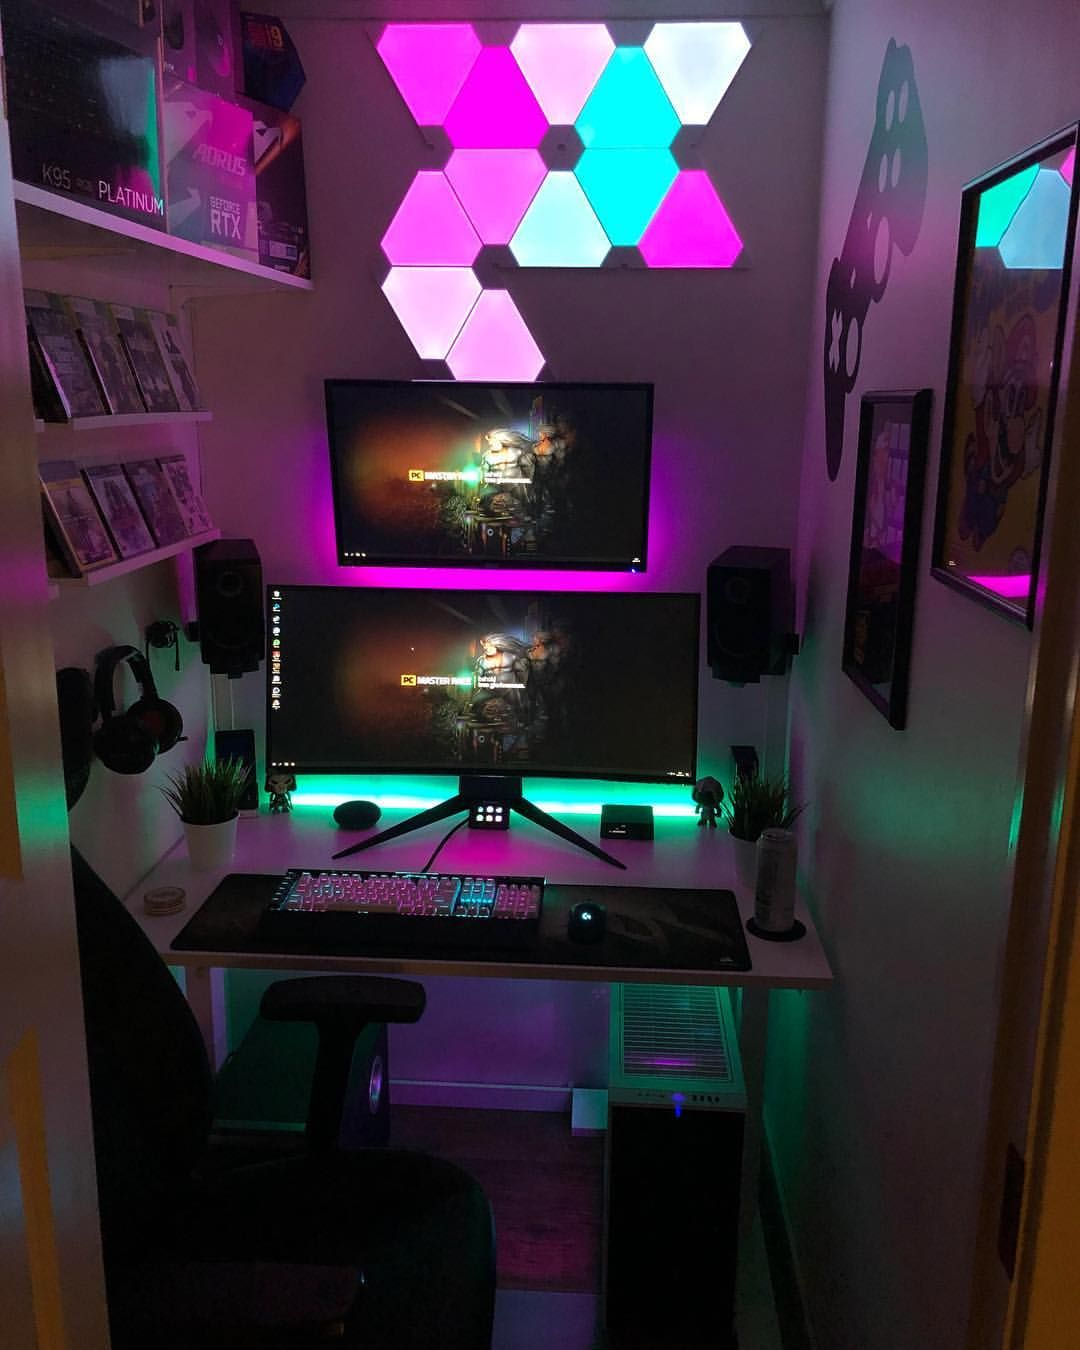 We researched the best products to help you get your game on. Pin by BROTHERTEDD on Setups   Video game room design ...